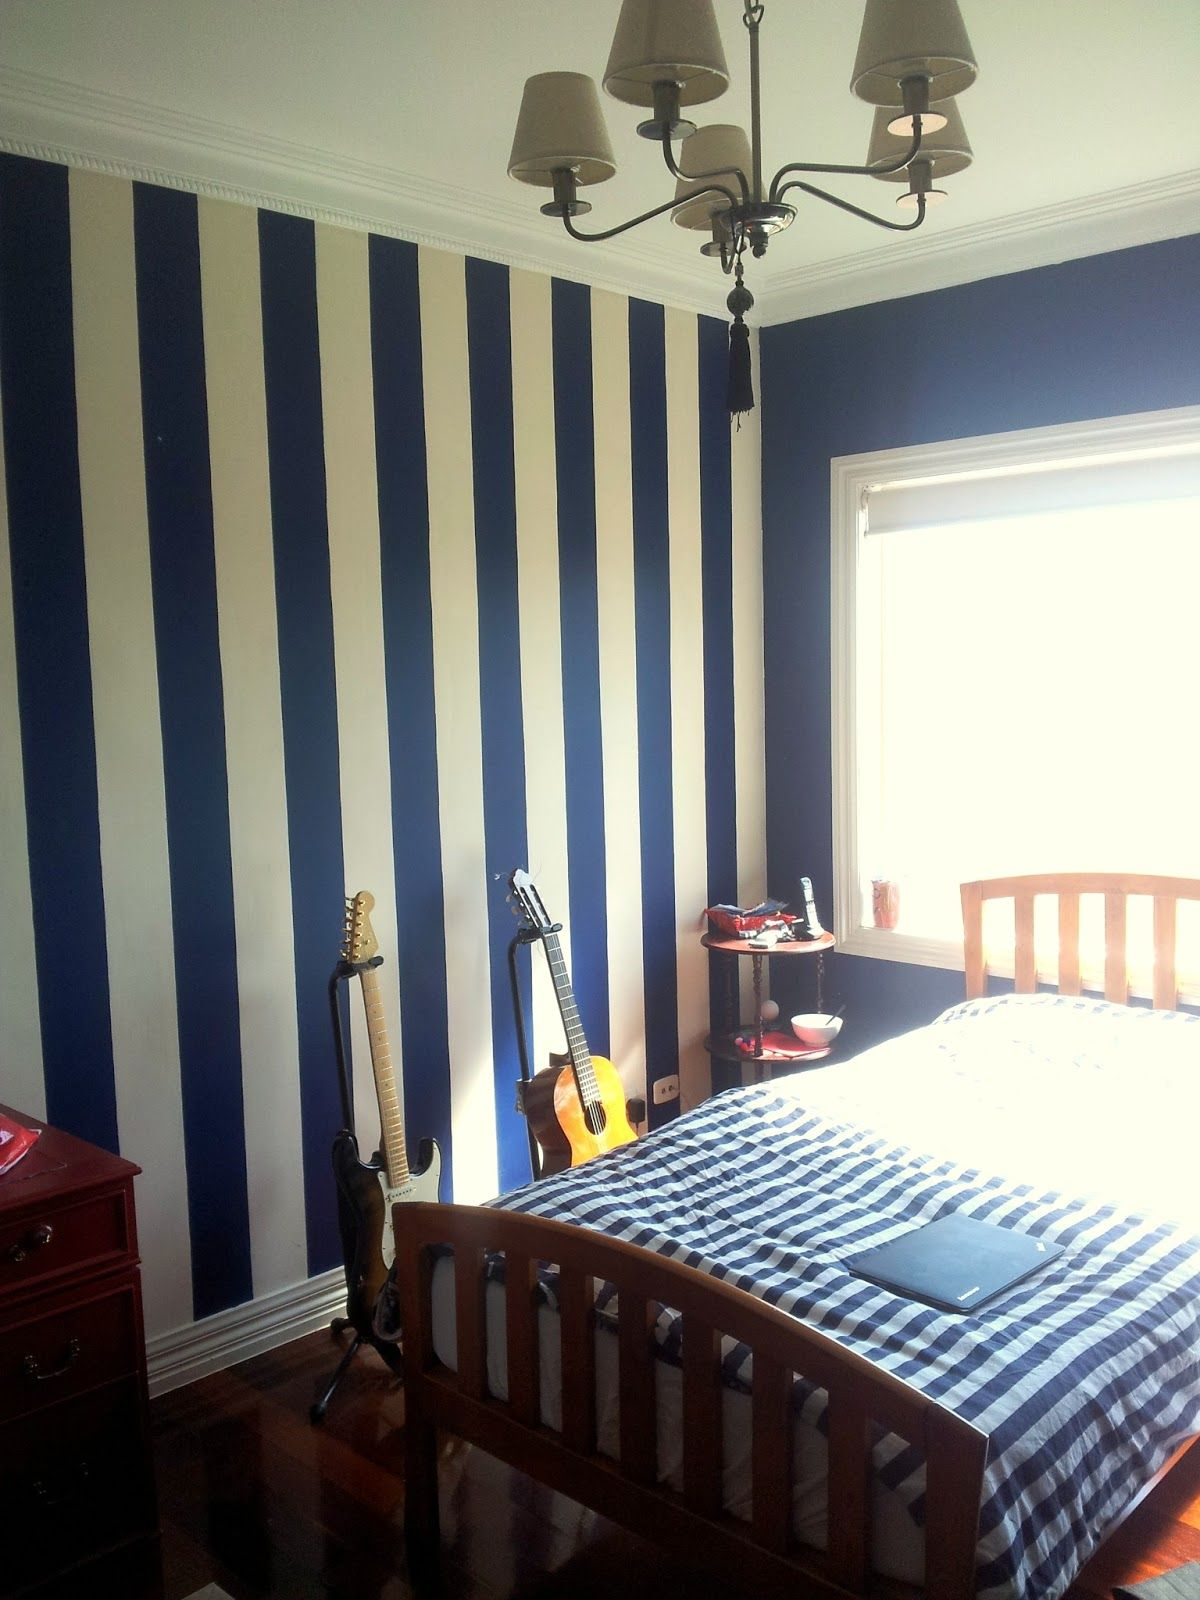 Baby Blue Bedroom Ideas Stripes In Navy On One Wall Behind Headboard Charmaine 39s